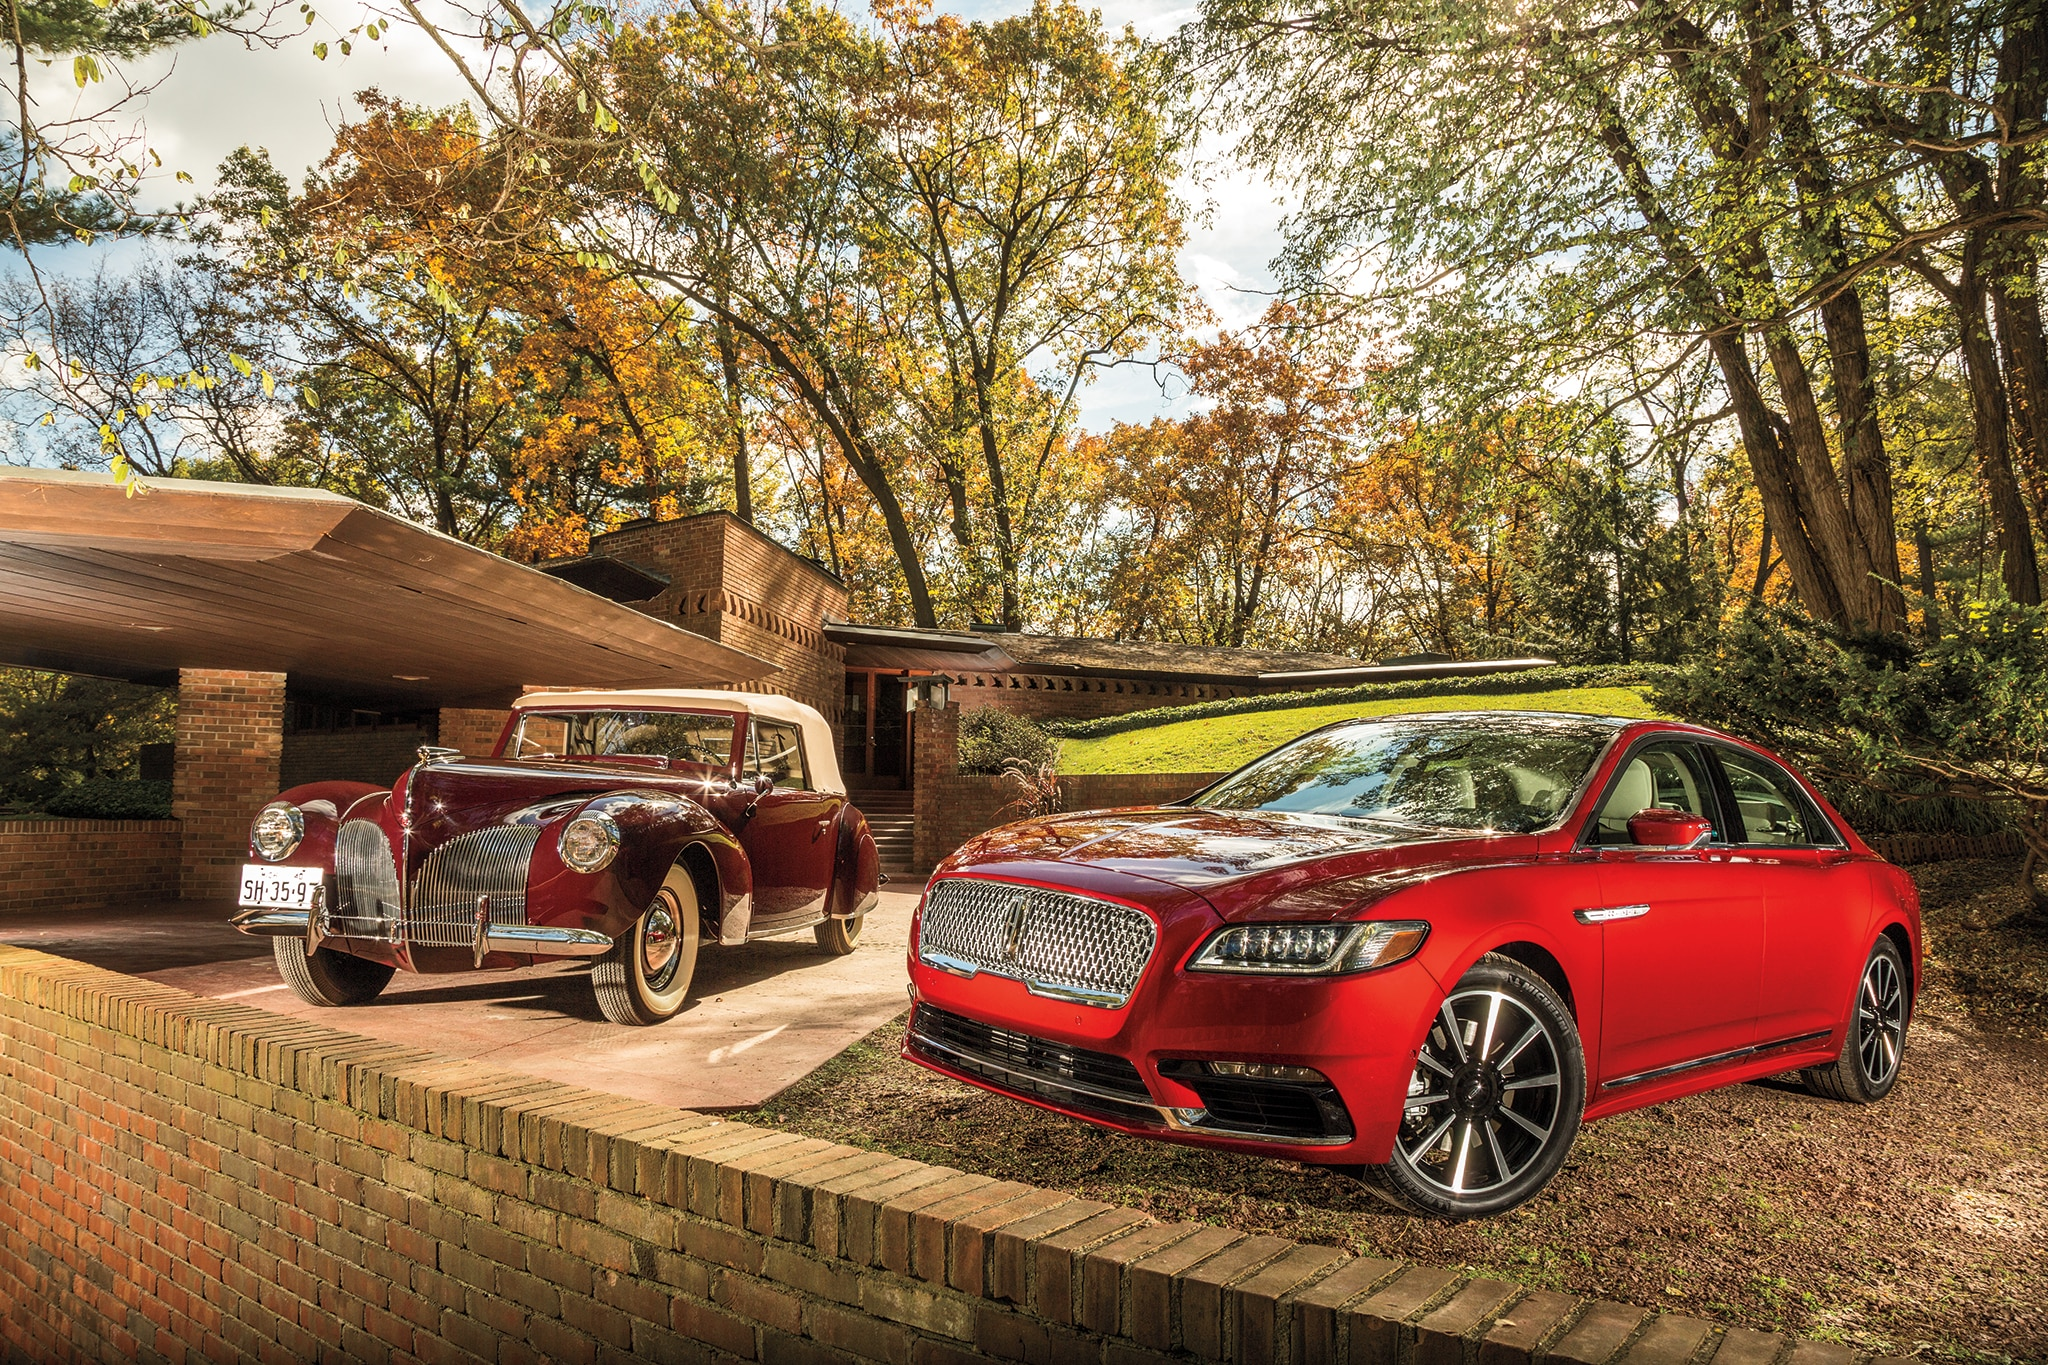 2017 Lincoln Continental And 1940 Lincoln Zephyr Continental Cabriolet 01